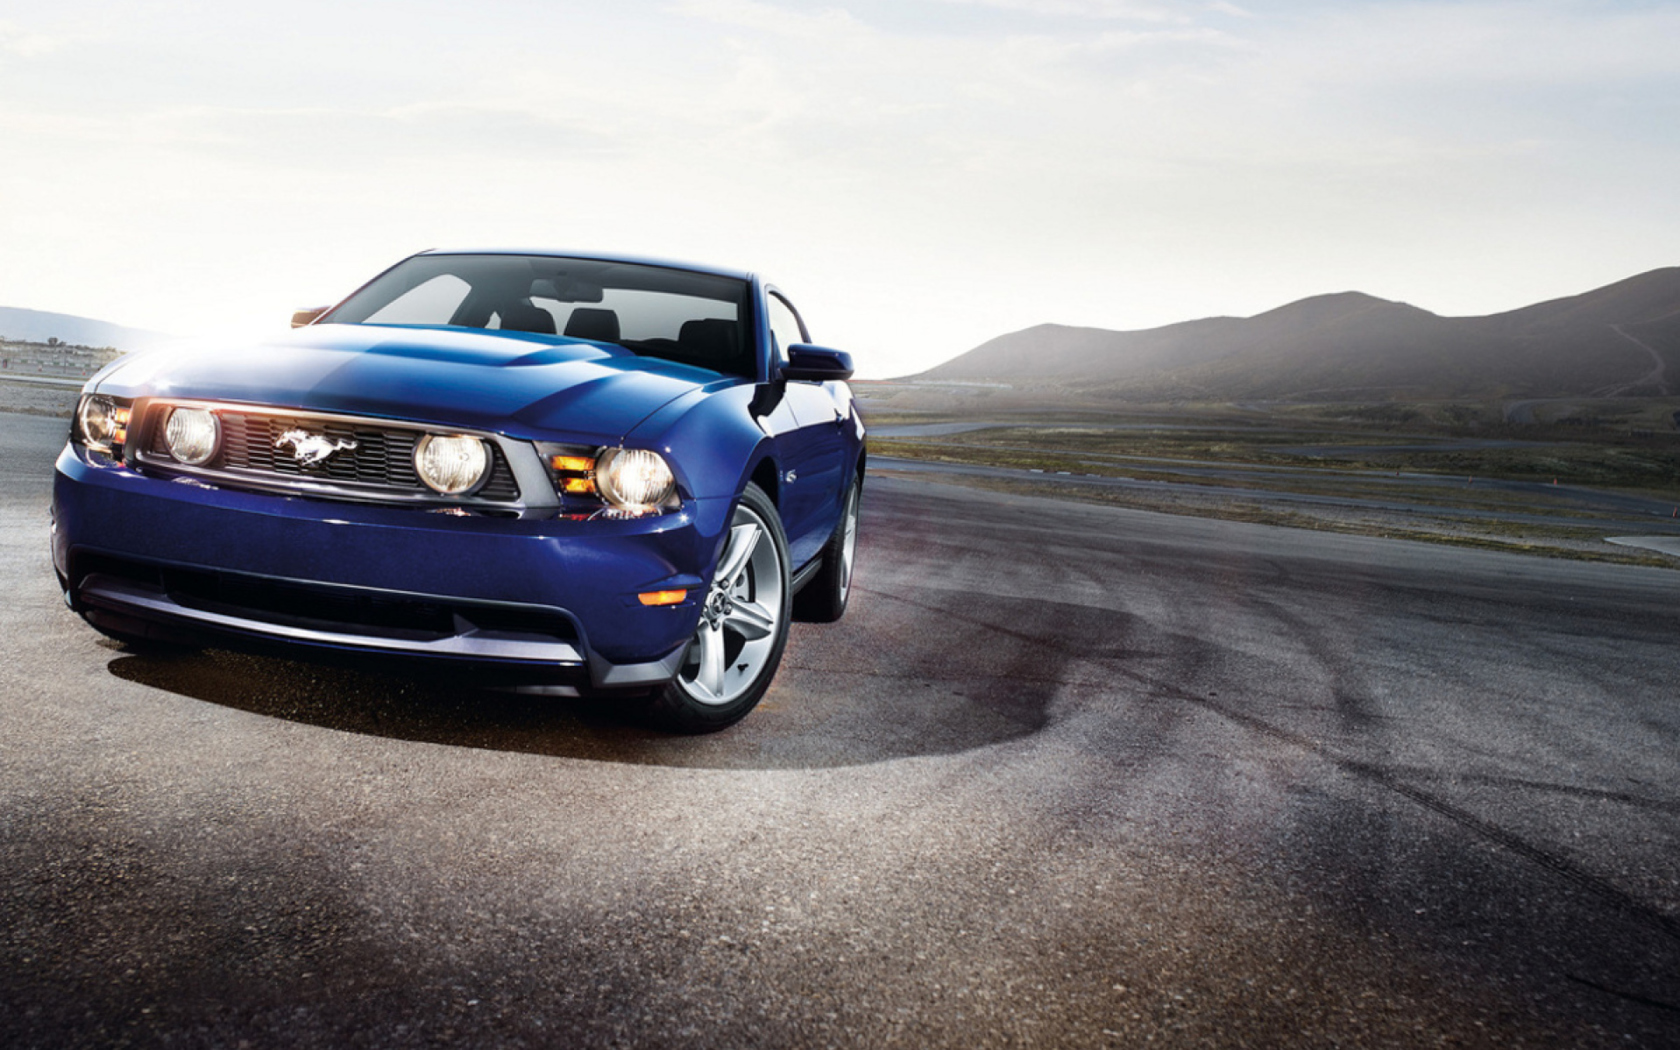 Blue Ford Mustang Wallpaper for 1680x1050